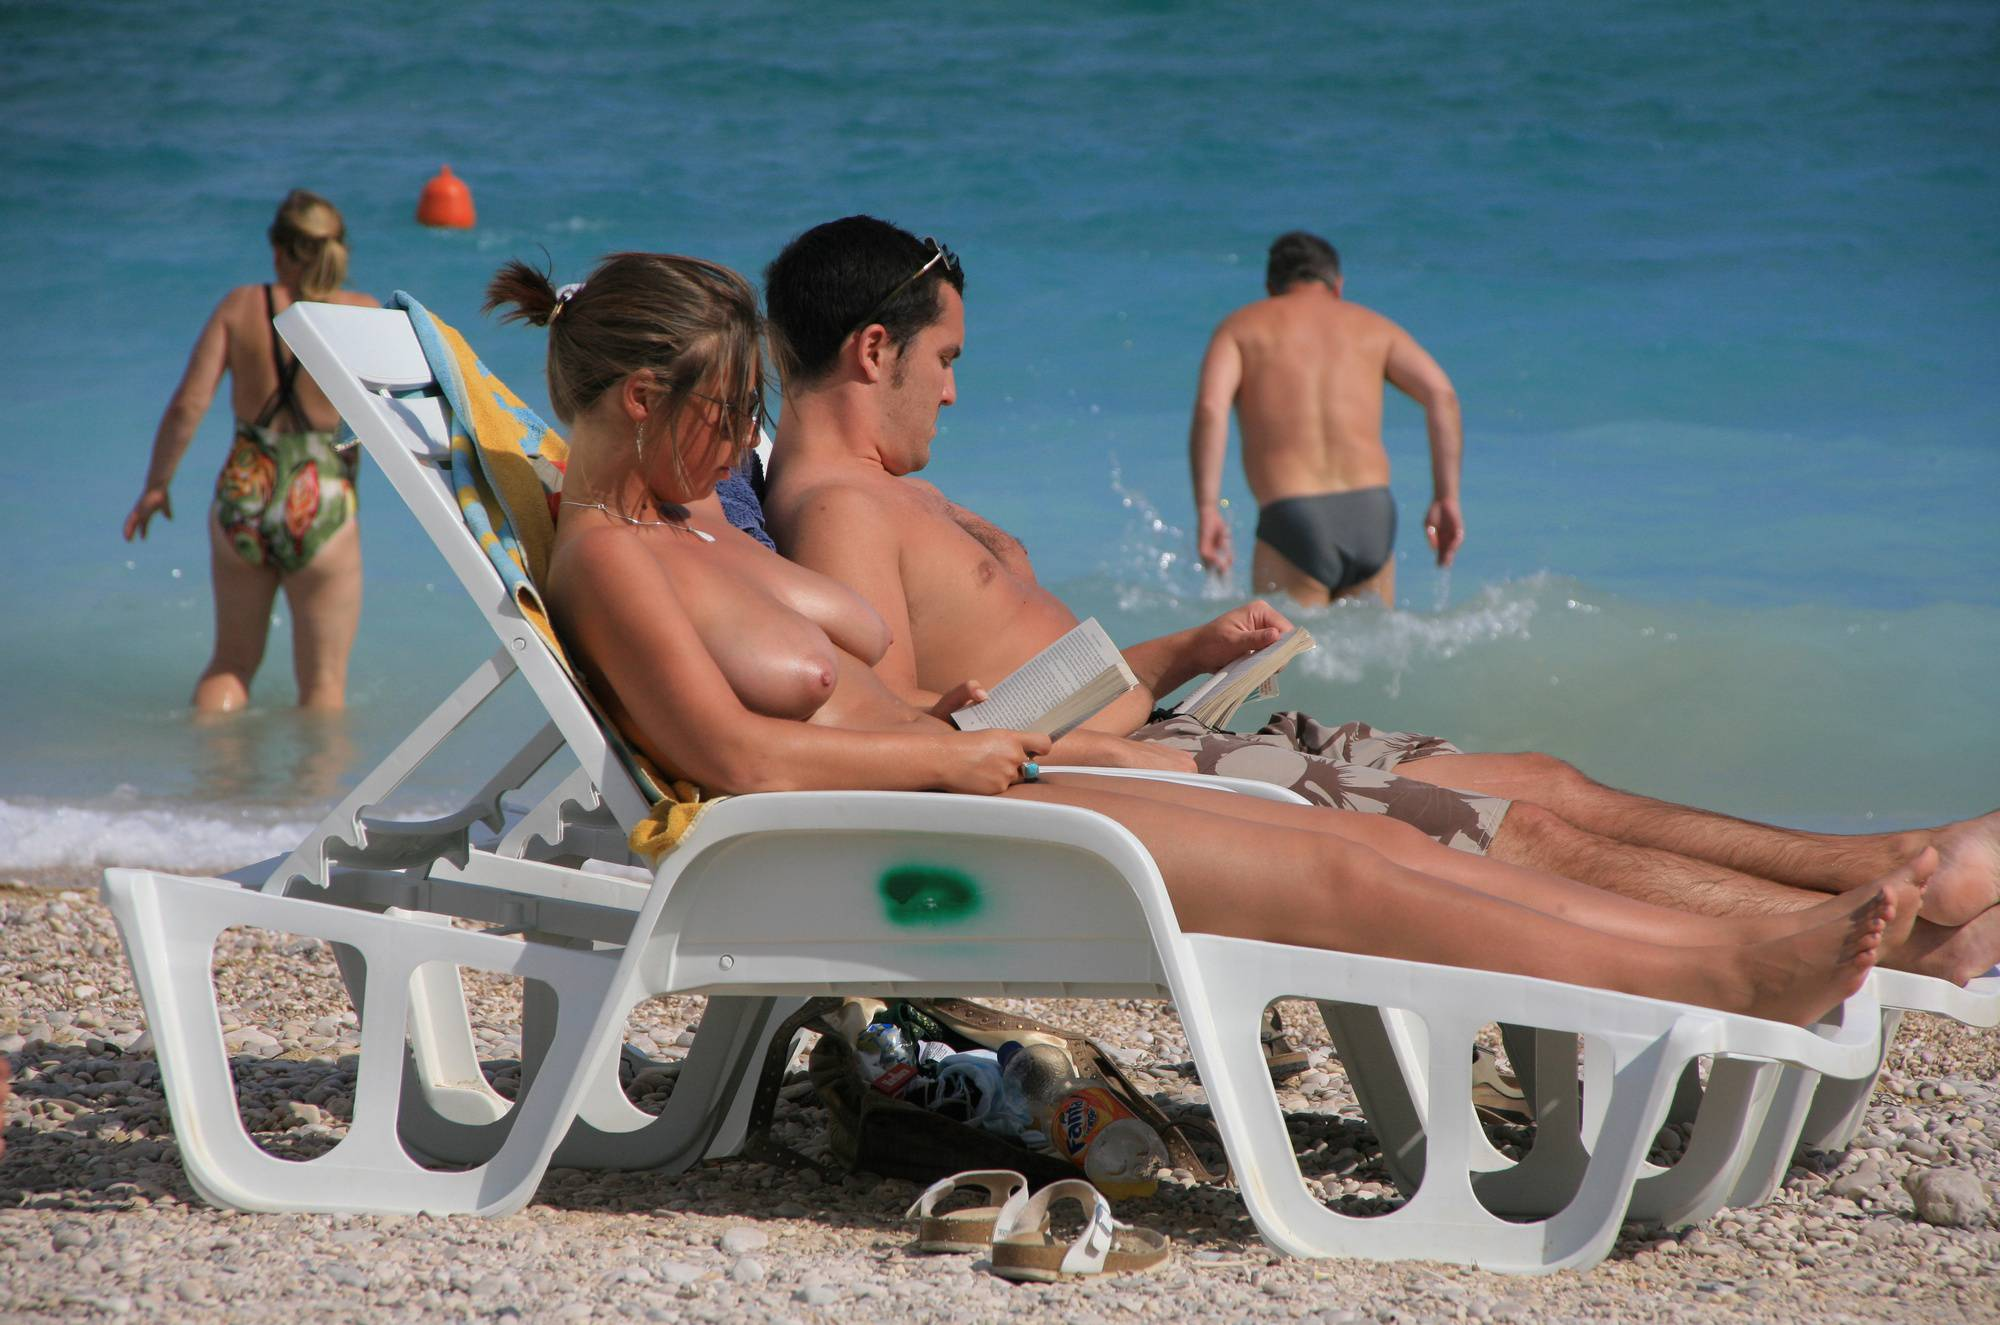 Nudist Pics Croatian Baska Vivid Shots - 2